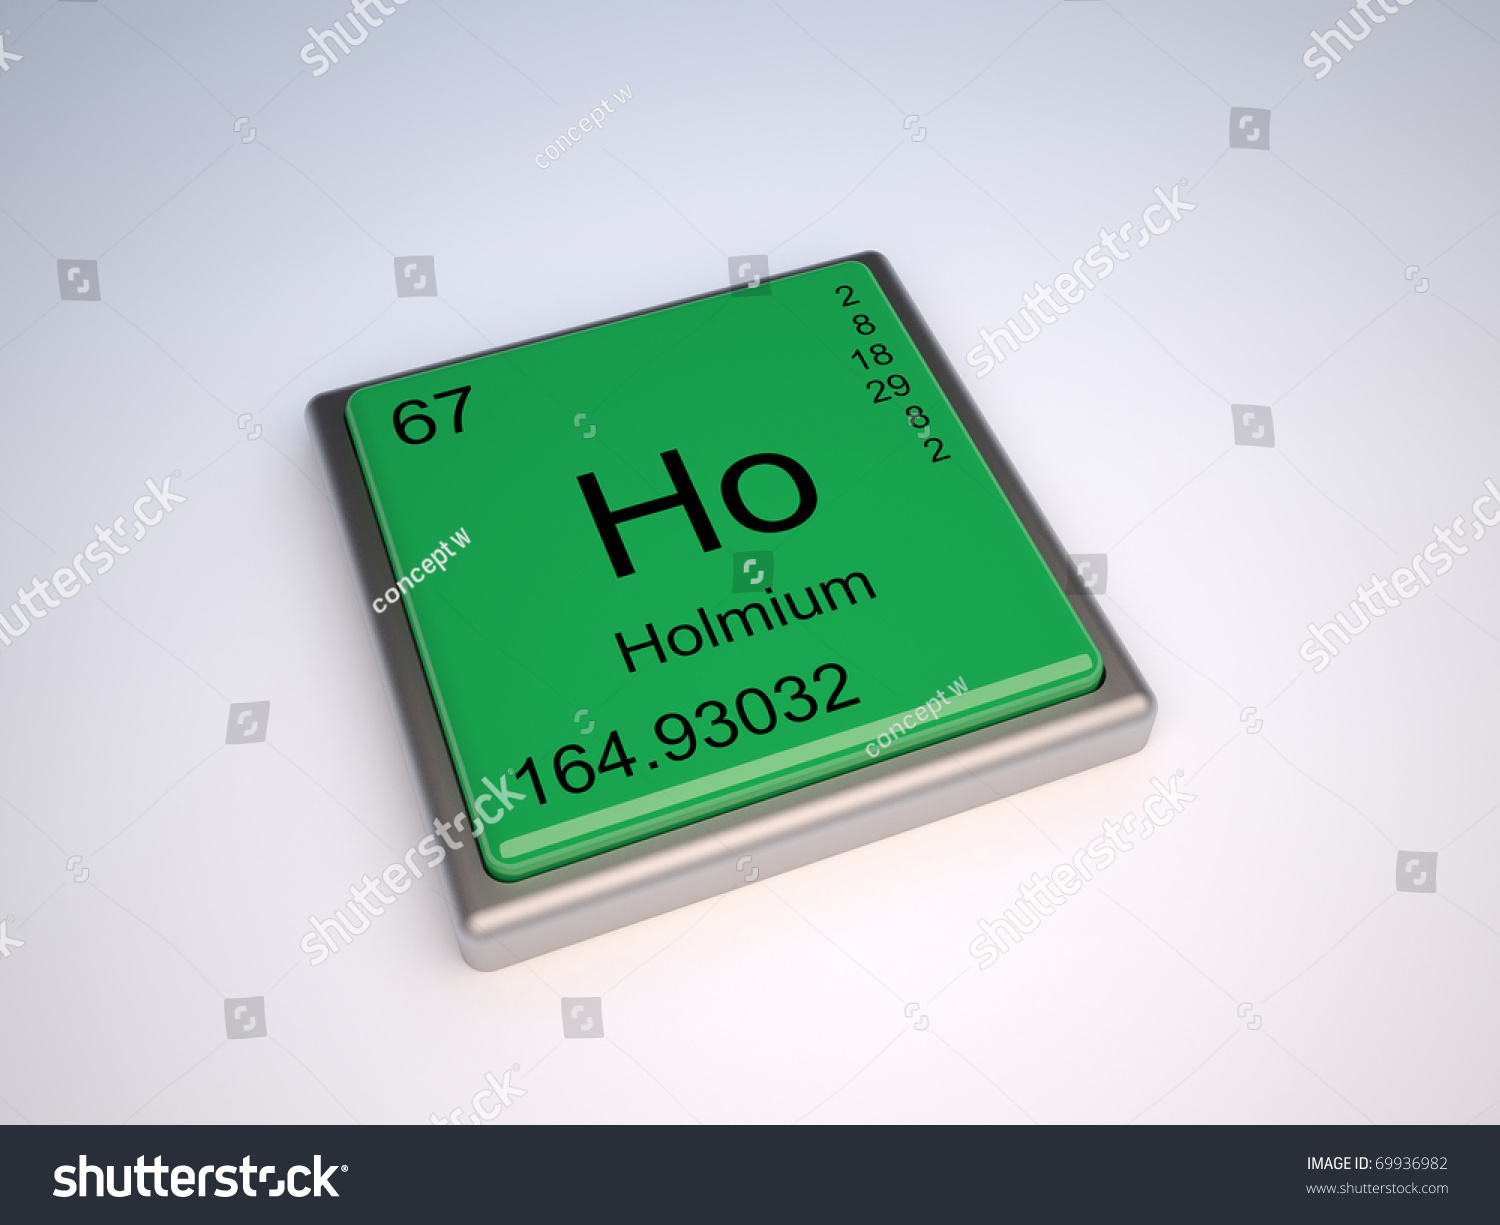 Holmium chemical element periodic table symbol stock photo holmium chemical element of the periodic table with symbol ho gamestrikefo Images